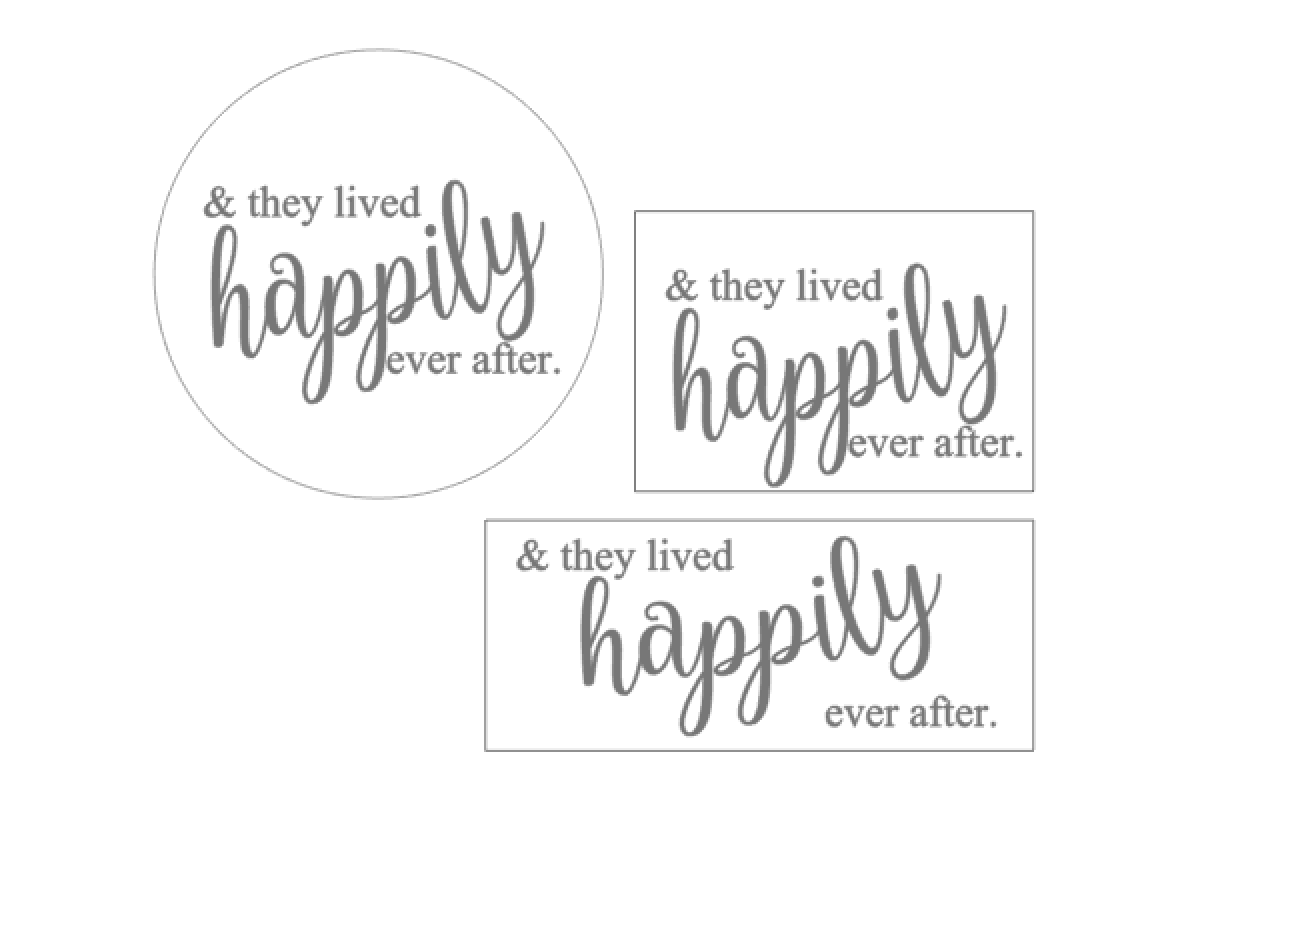 & they lived happily ever after.PNG